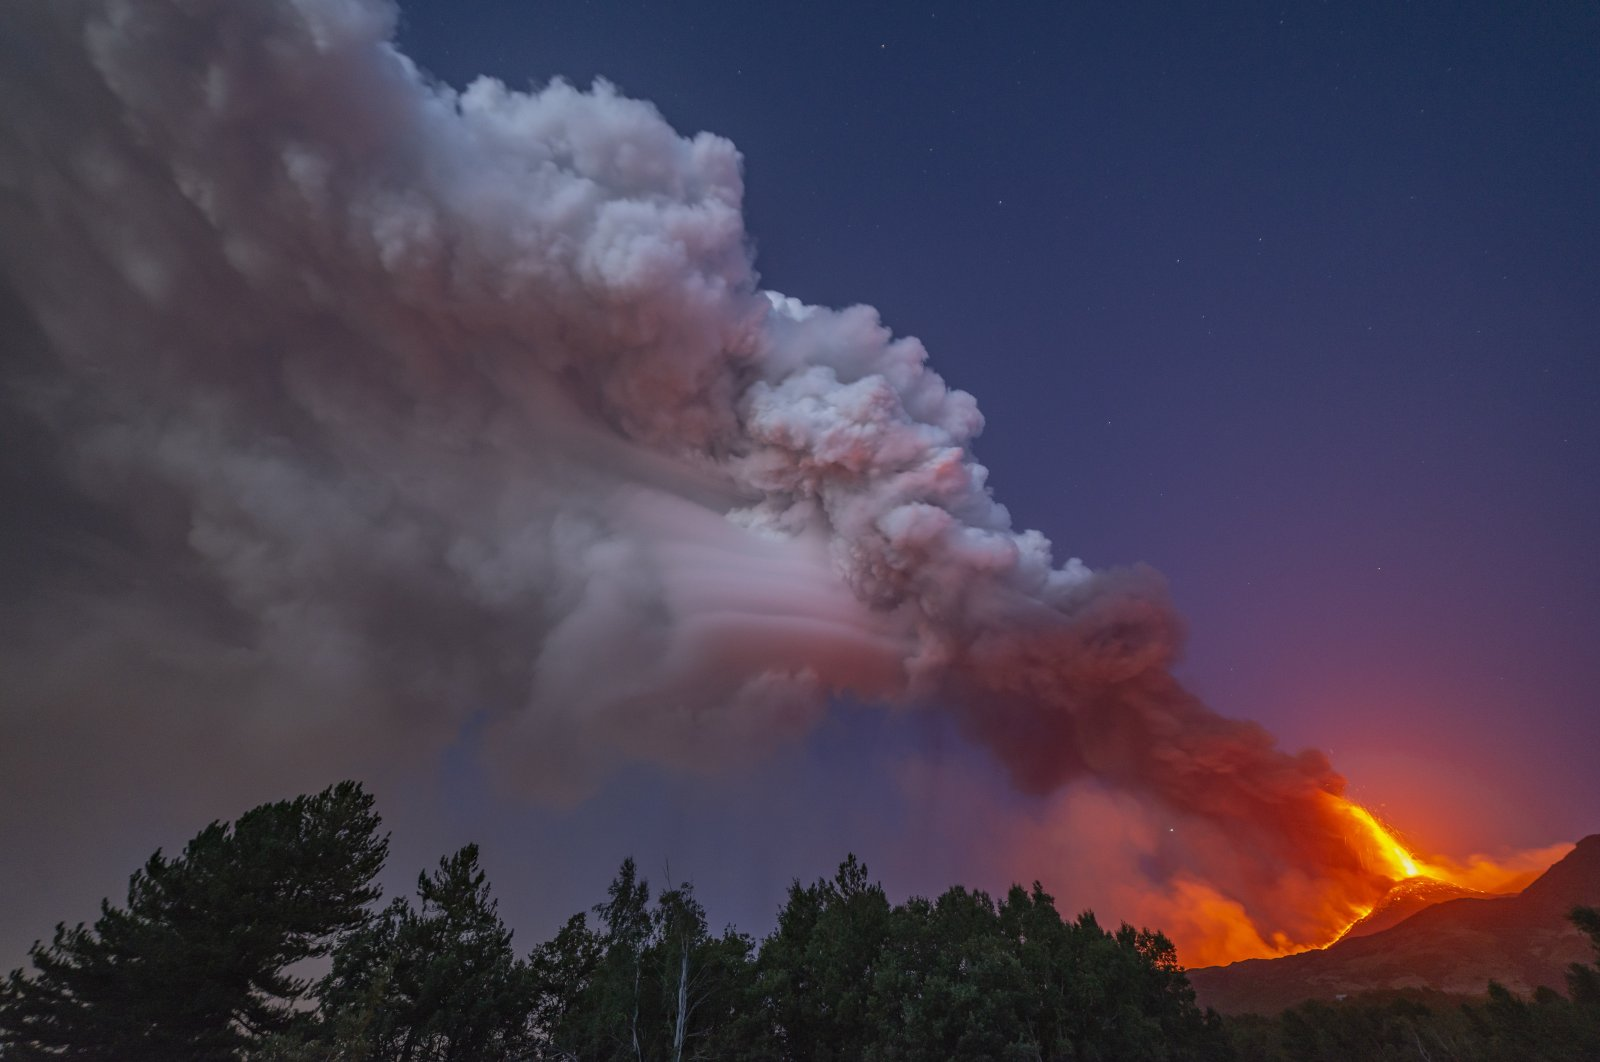 Smoke billows from the Mount Etna volcano as seen from Linguaglossa, Sicily, Aug. 9, 2021. (AP Photo)